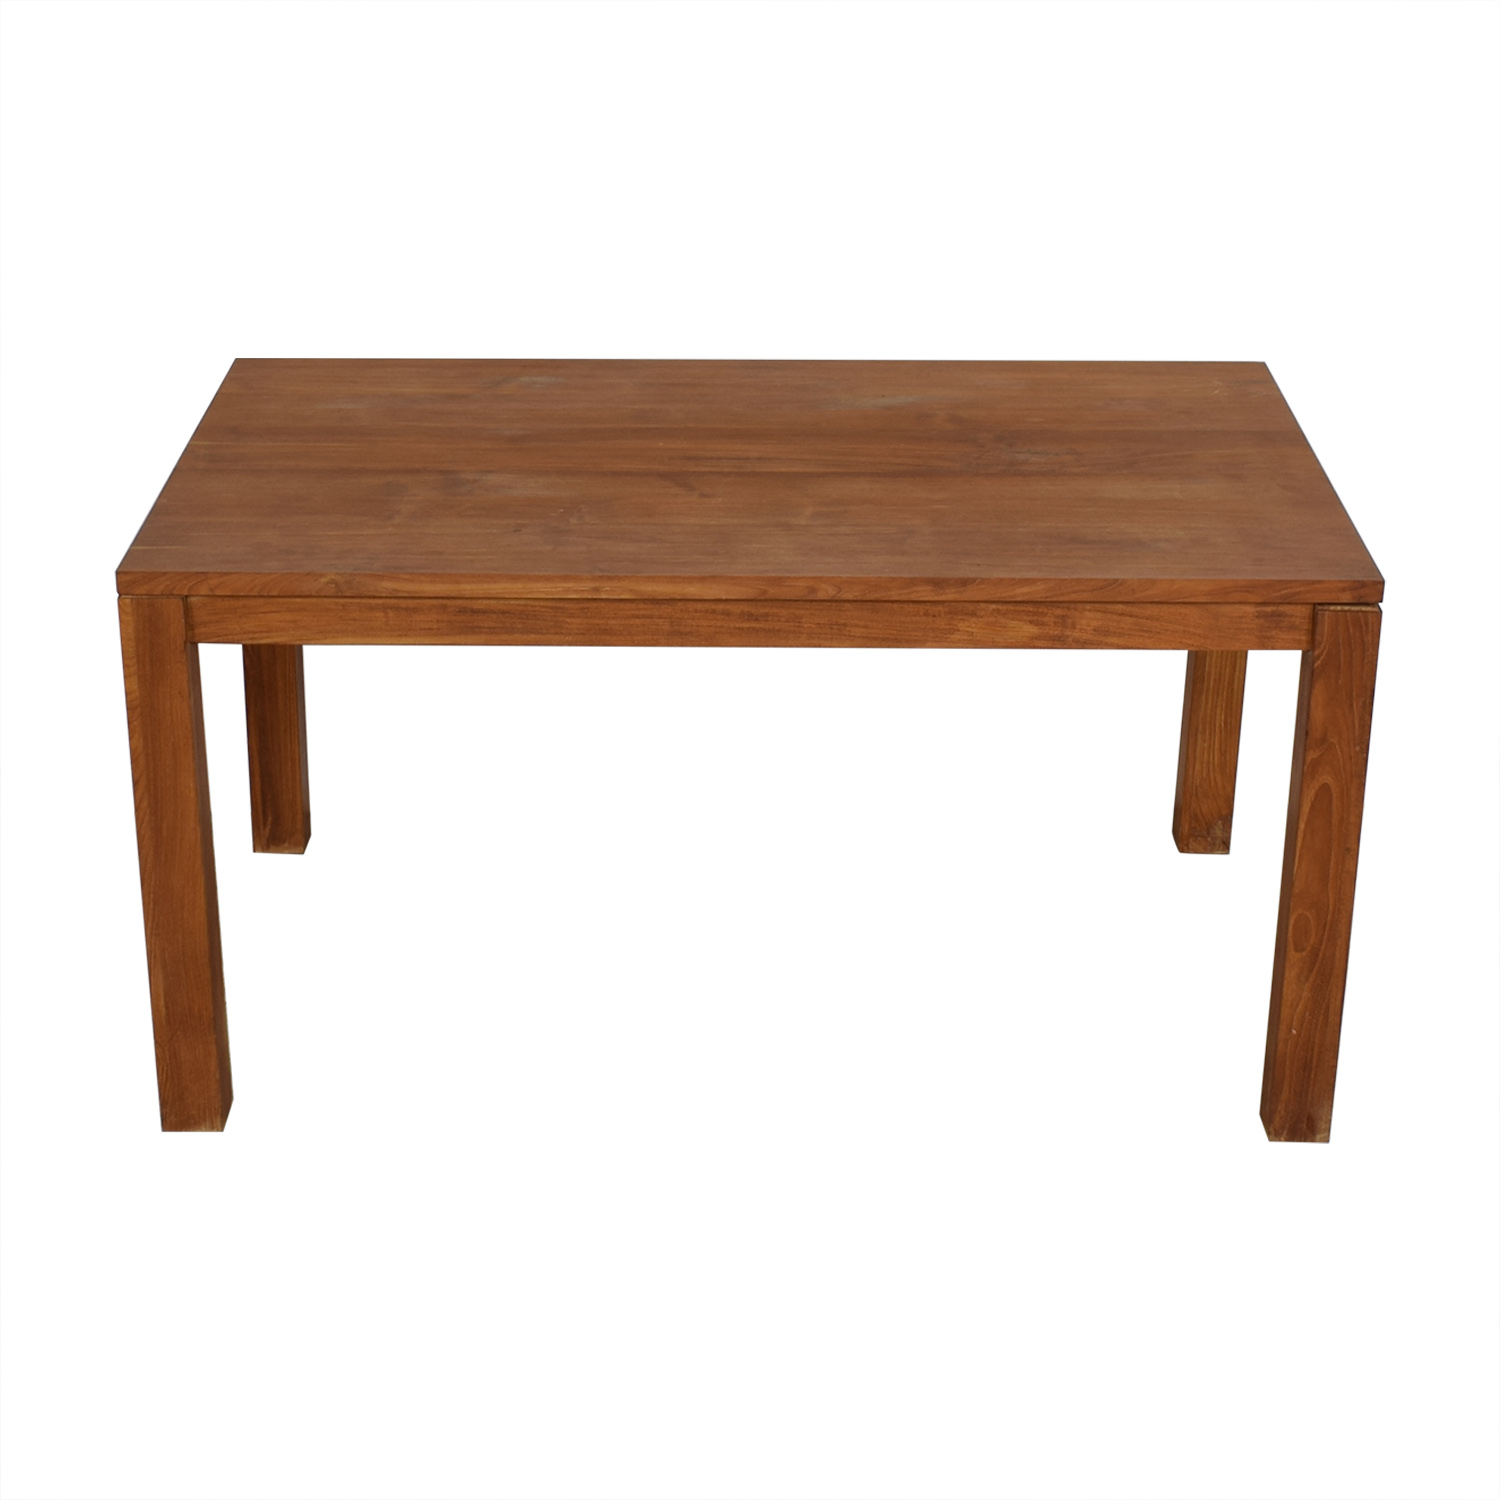 Crate & Barrel Rectangular Dining Table / Dinner Tables